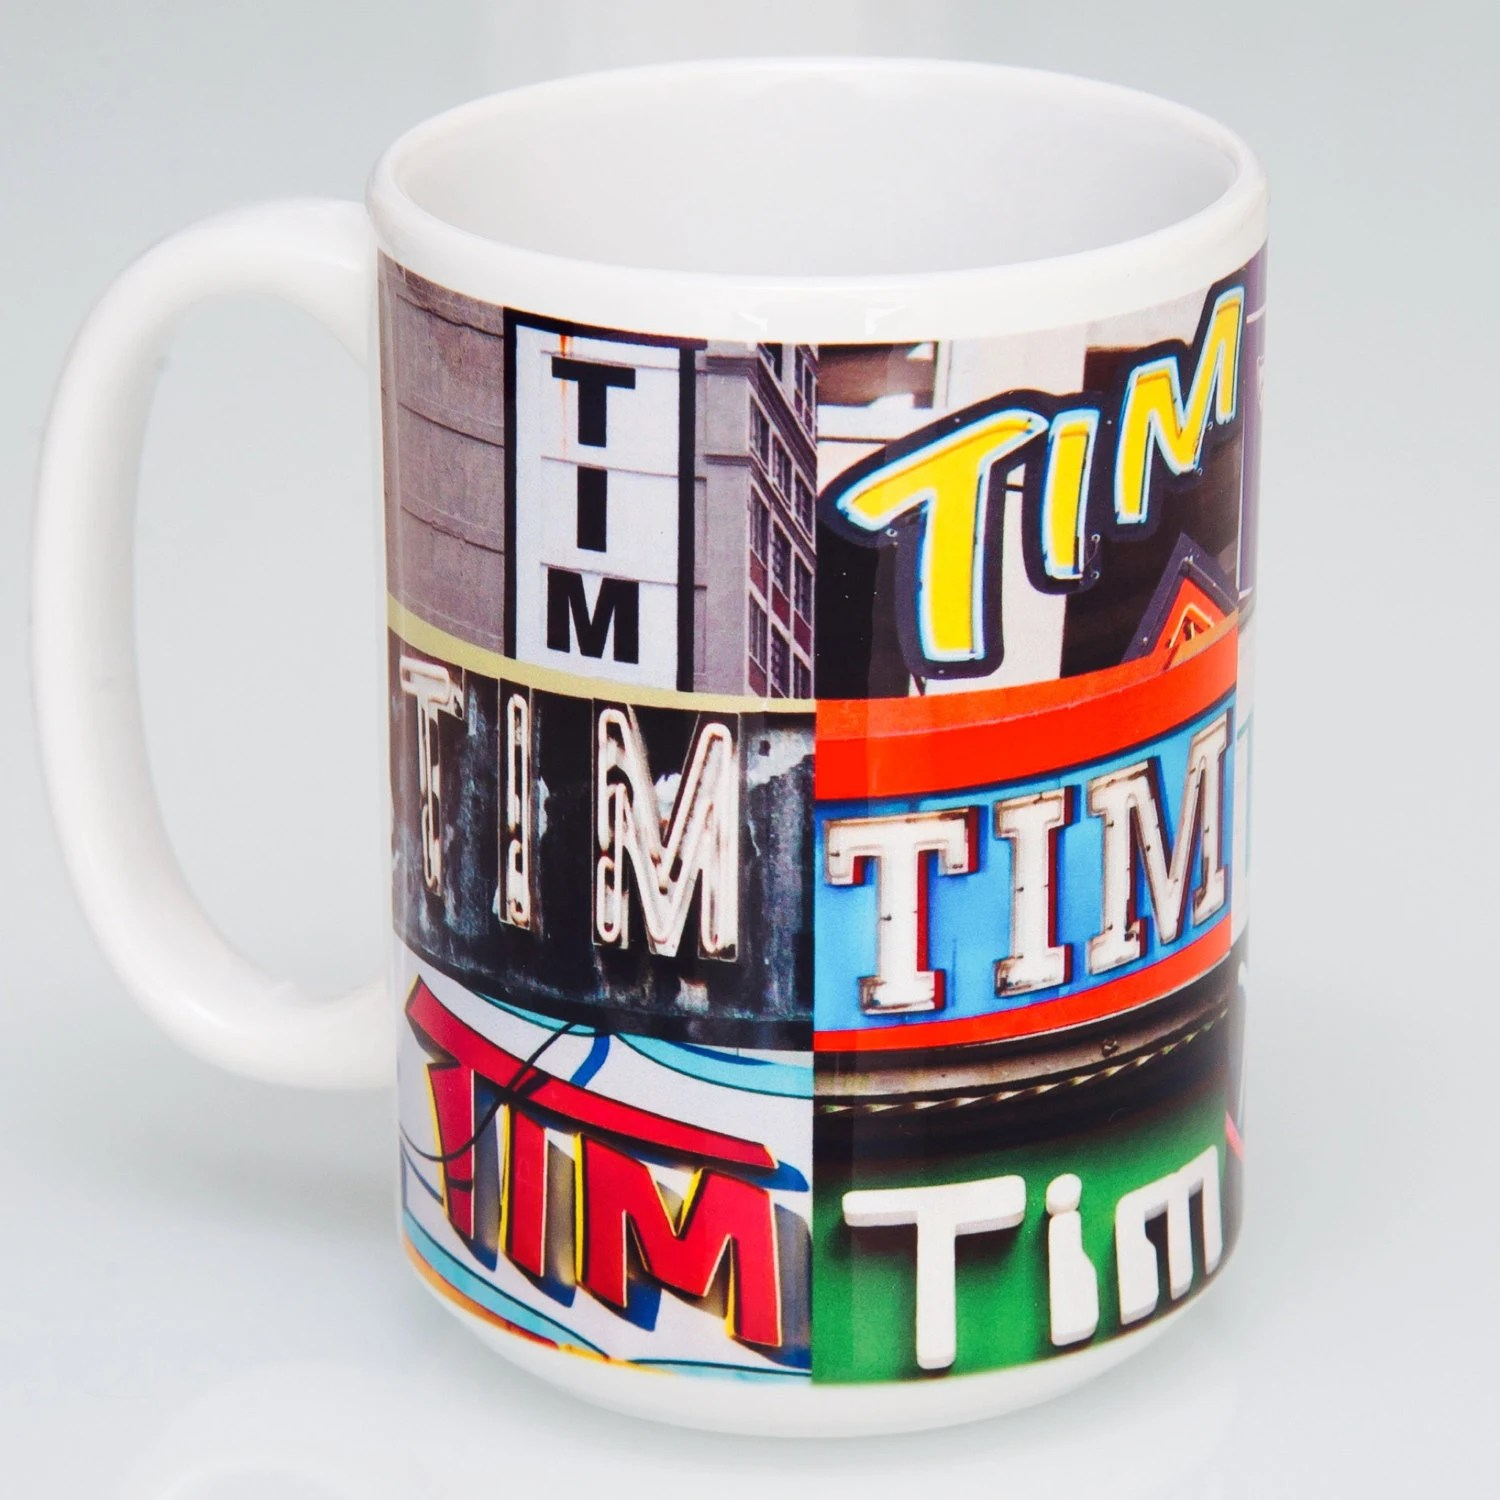 personalized coffee mugs featuring